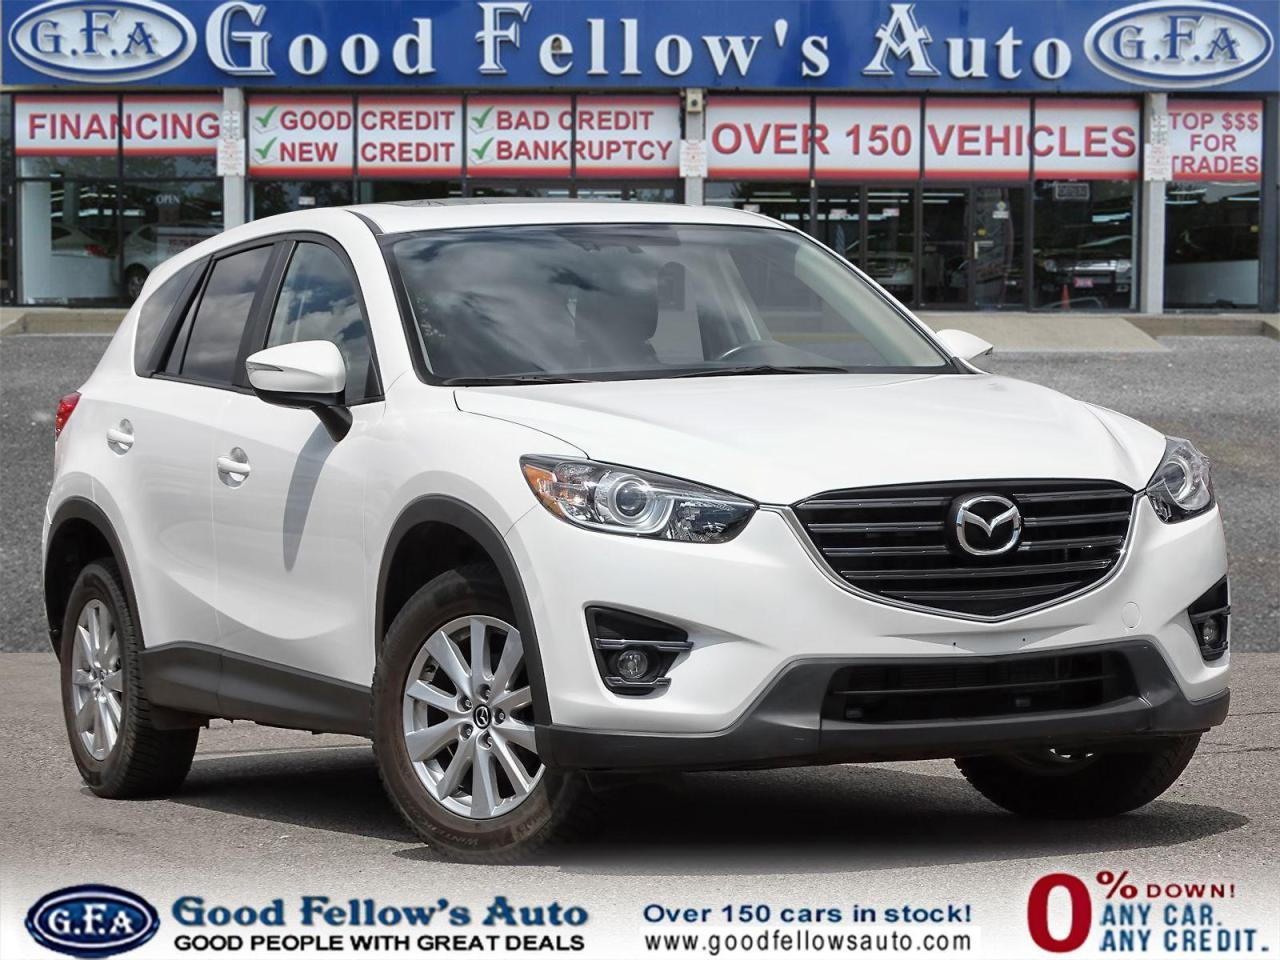 used 2016 mazda cx-5 gs model, leather seats, sunroof, skyactiv, navi for sale in toronto, ontario carpages.ca